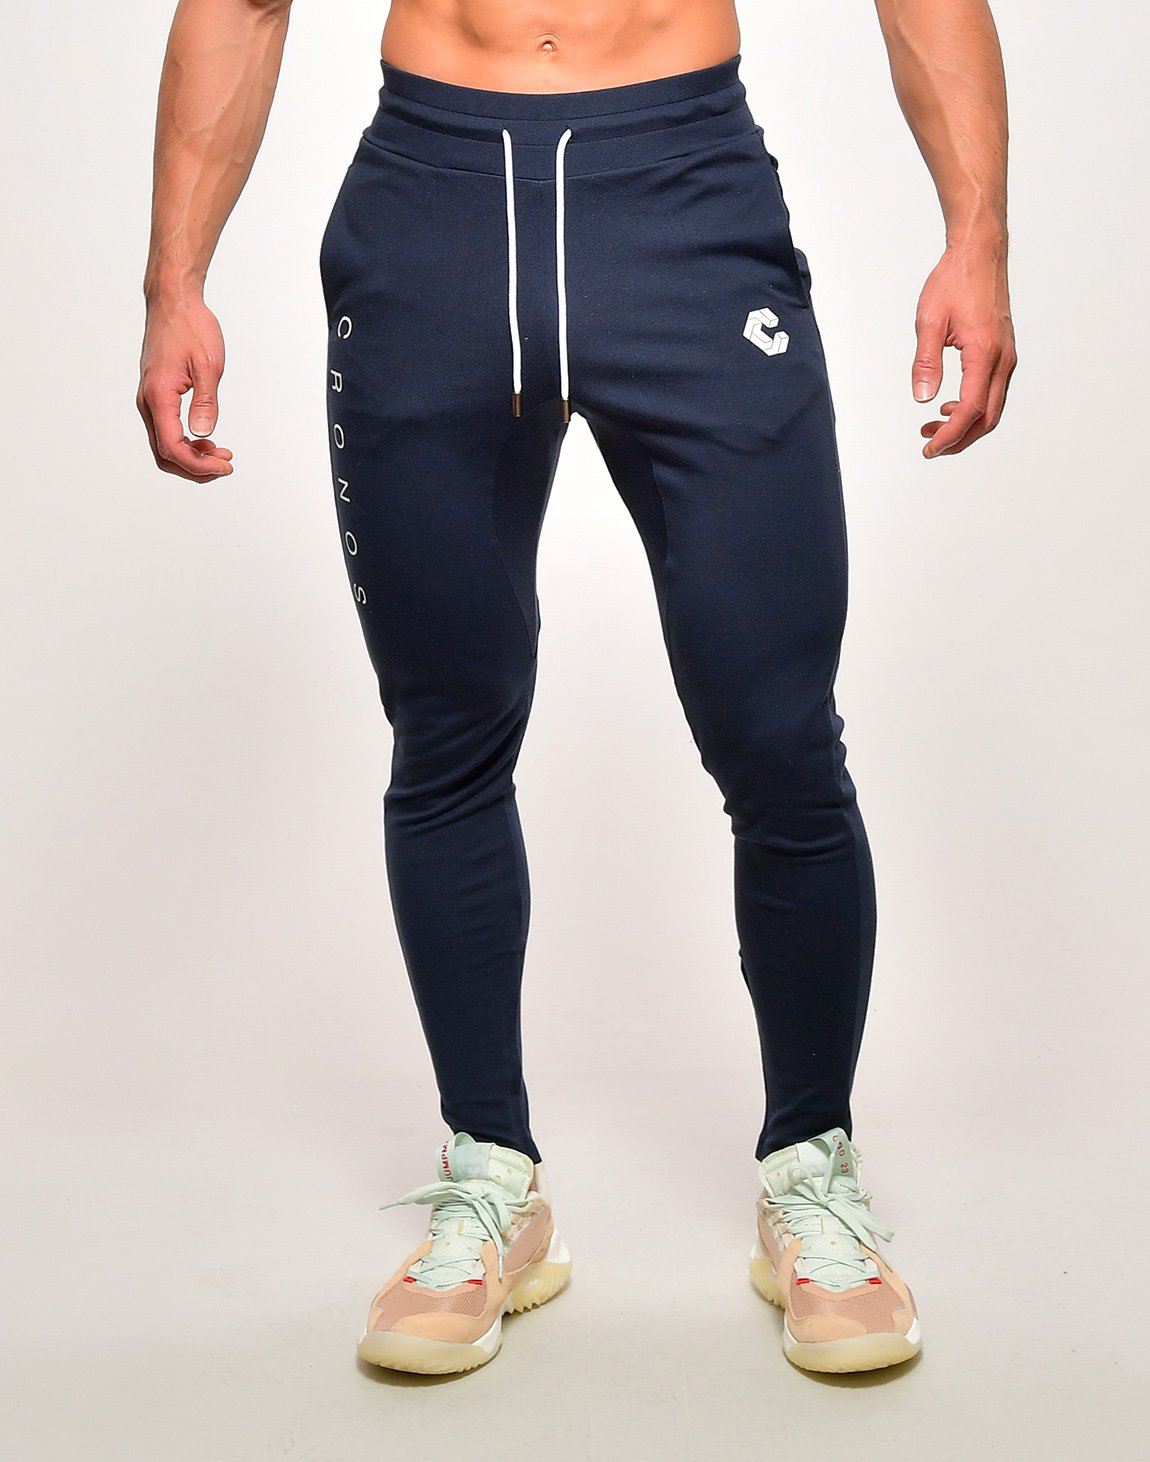 <img class='new_mark_img1' src='https://img.shop-pro.jp/img/new/icons55.gif' style='border:none;display:inline;margin:0px;padding:0px;width:auto;' />CRONOS SIDE FONT PANTS【NAVY】